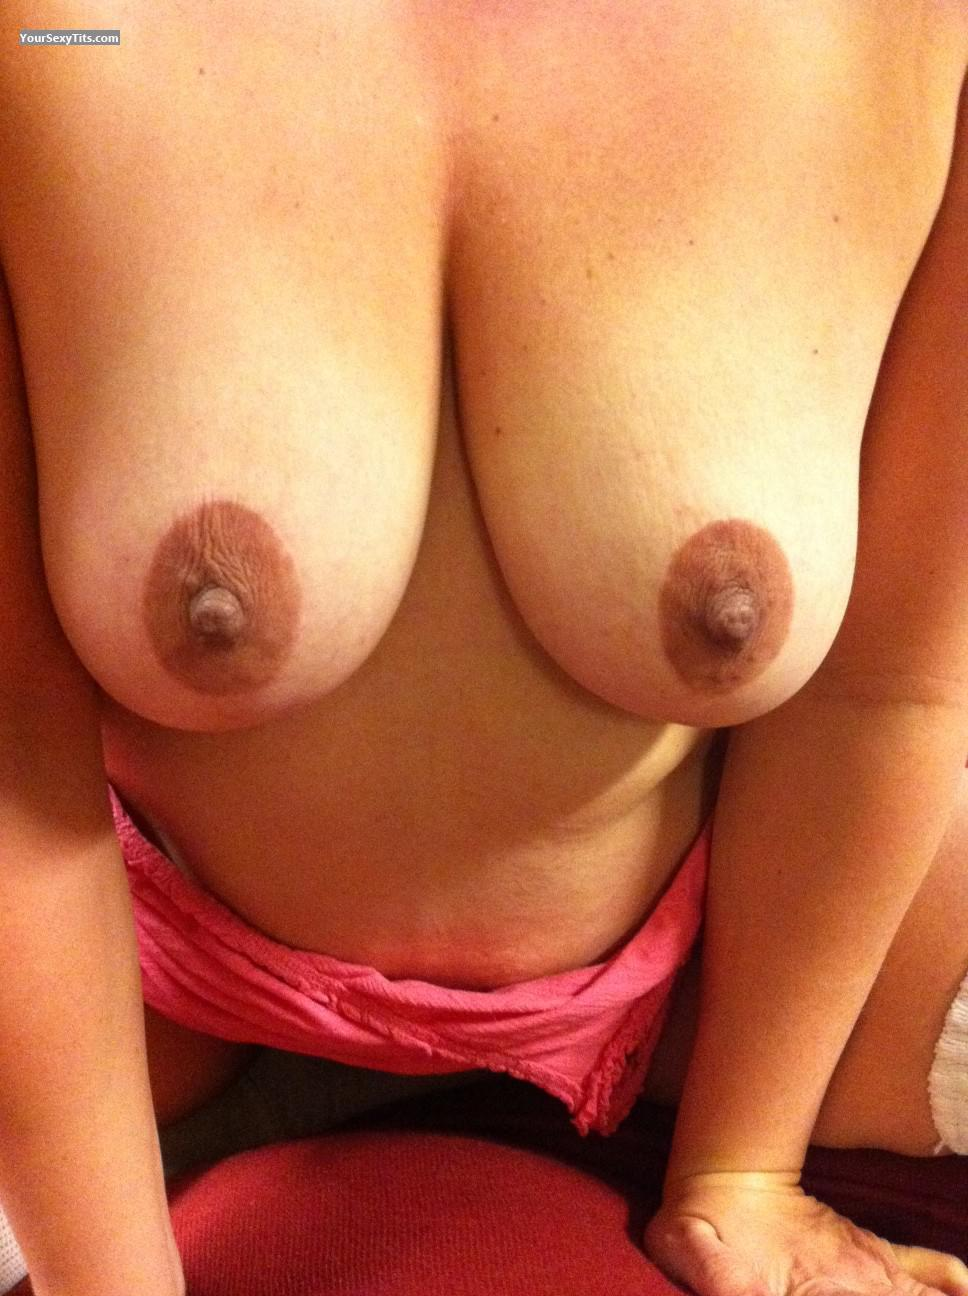 Tit Flash: Wife's Medium Tits - Innocent from United States